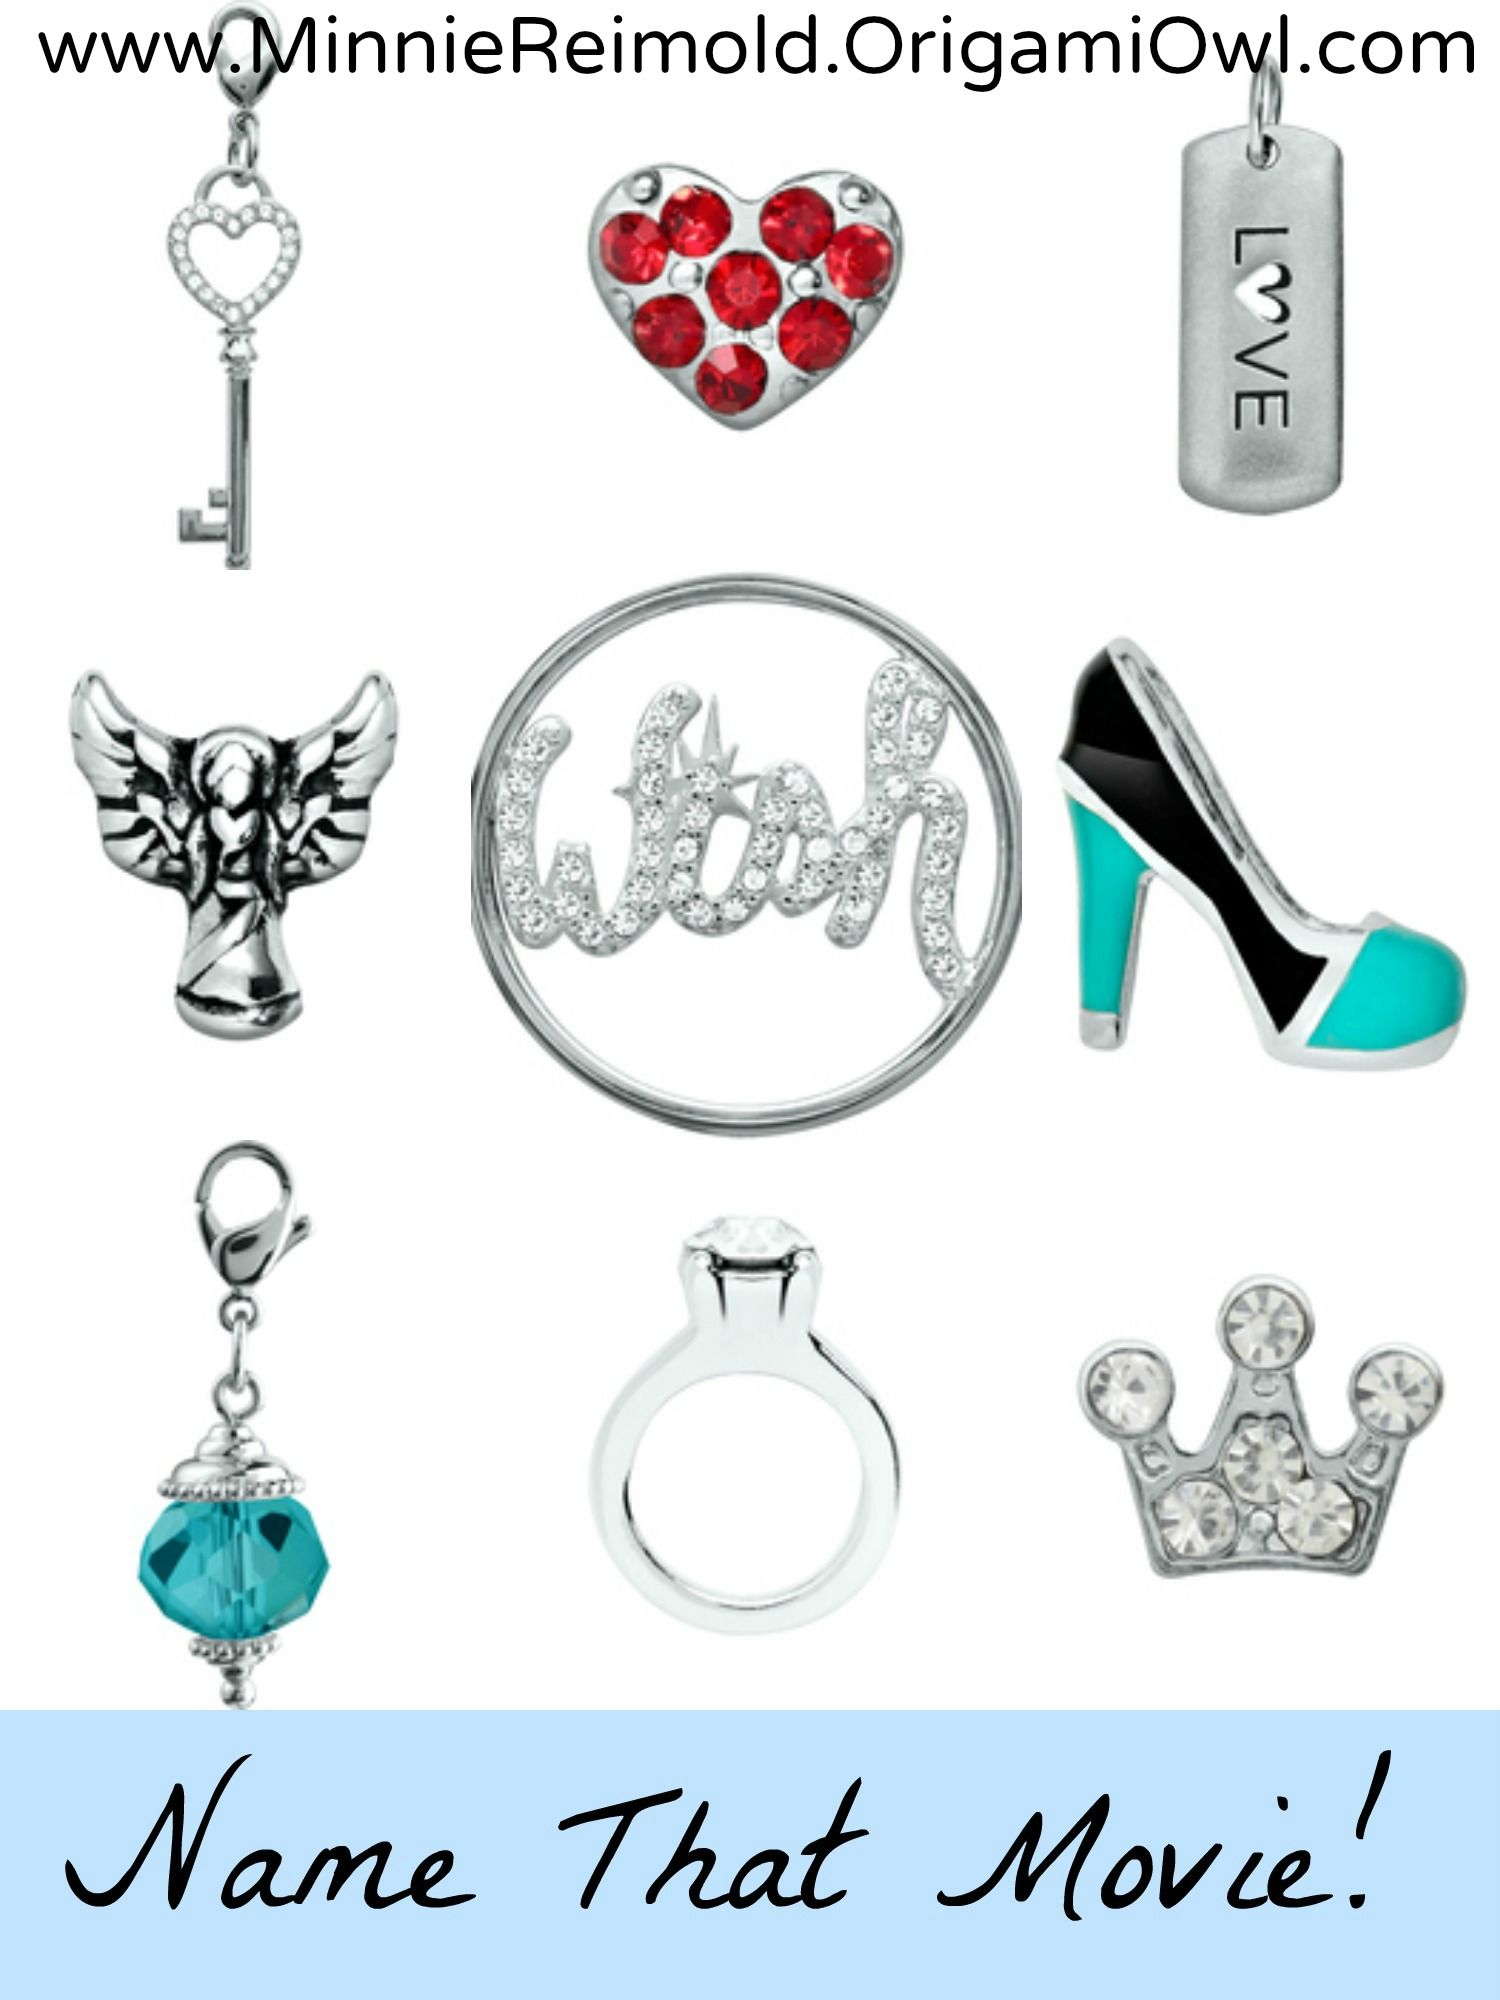 origami owl name that movie game answer cinderella http